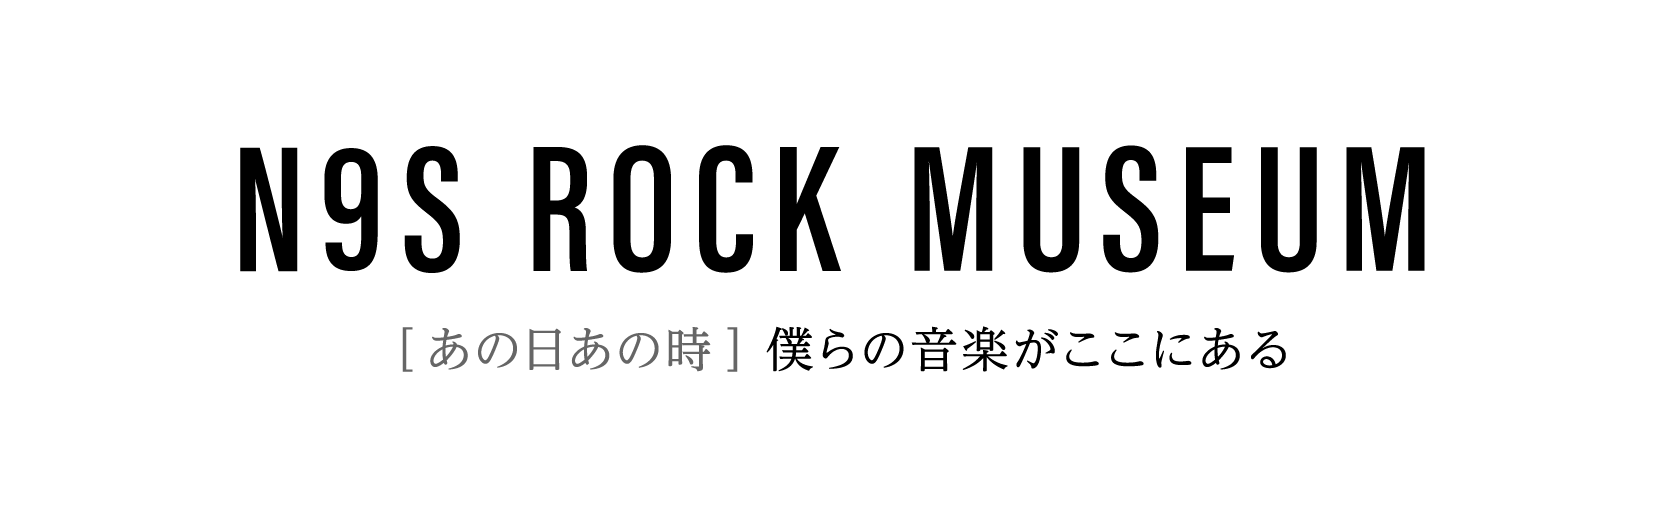 N9S ROCK MUSEUM online Shop